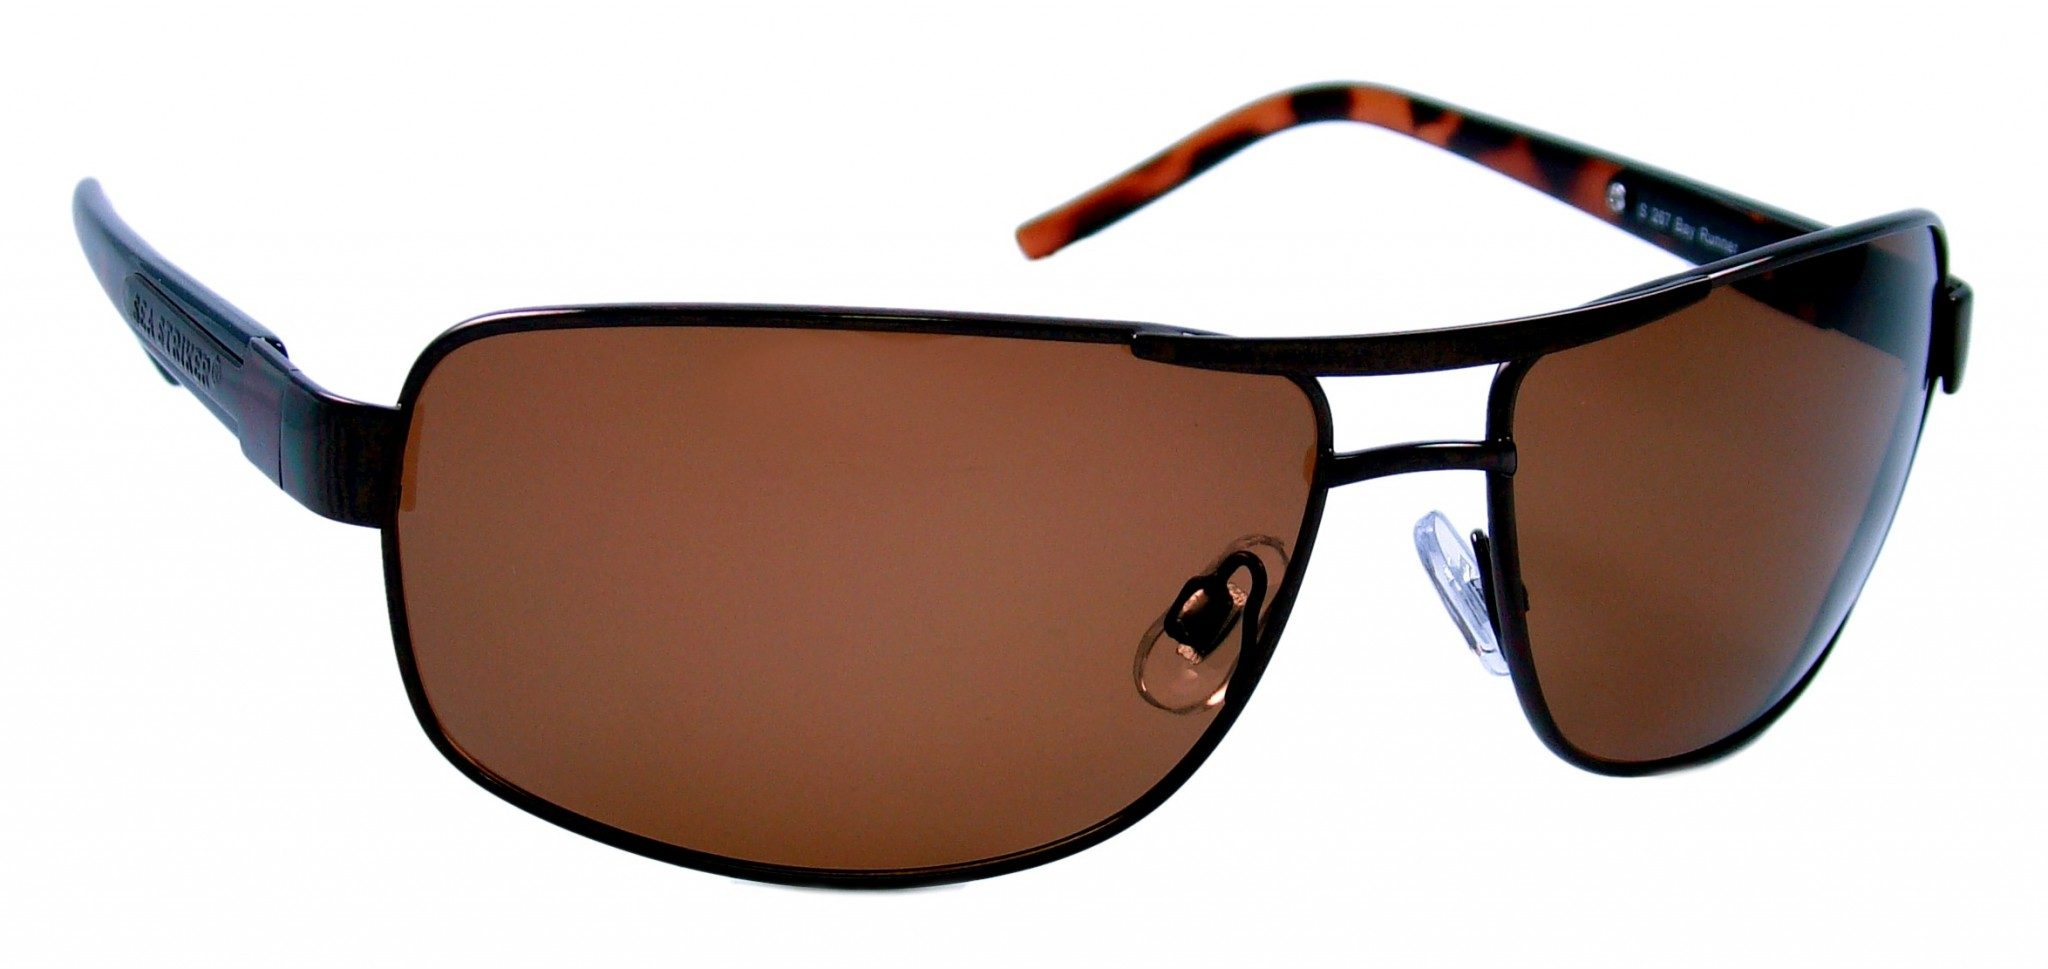 boating accessories- Bay Runner Tortoise/Brown Sunglasses